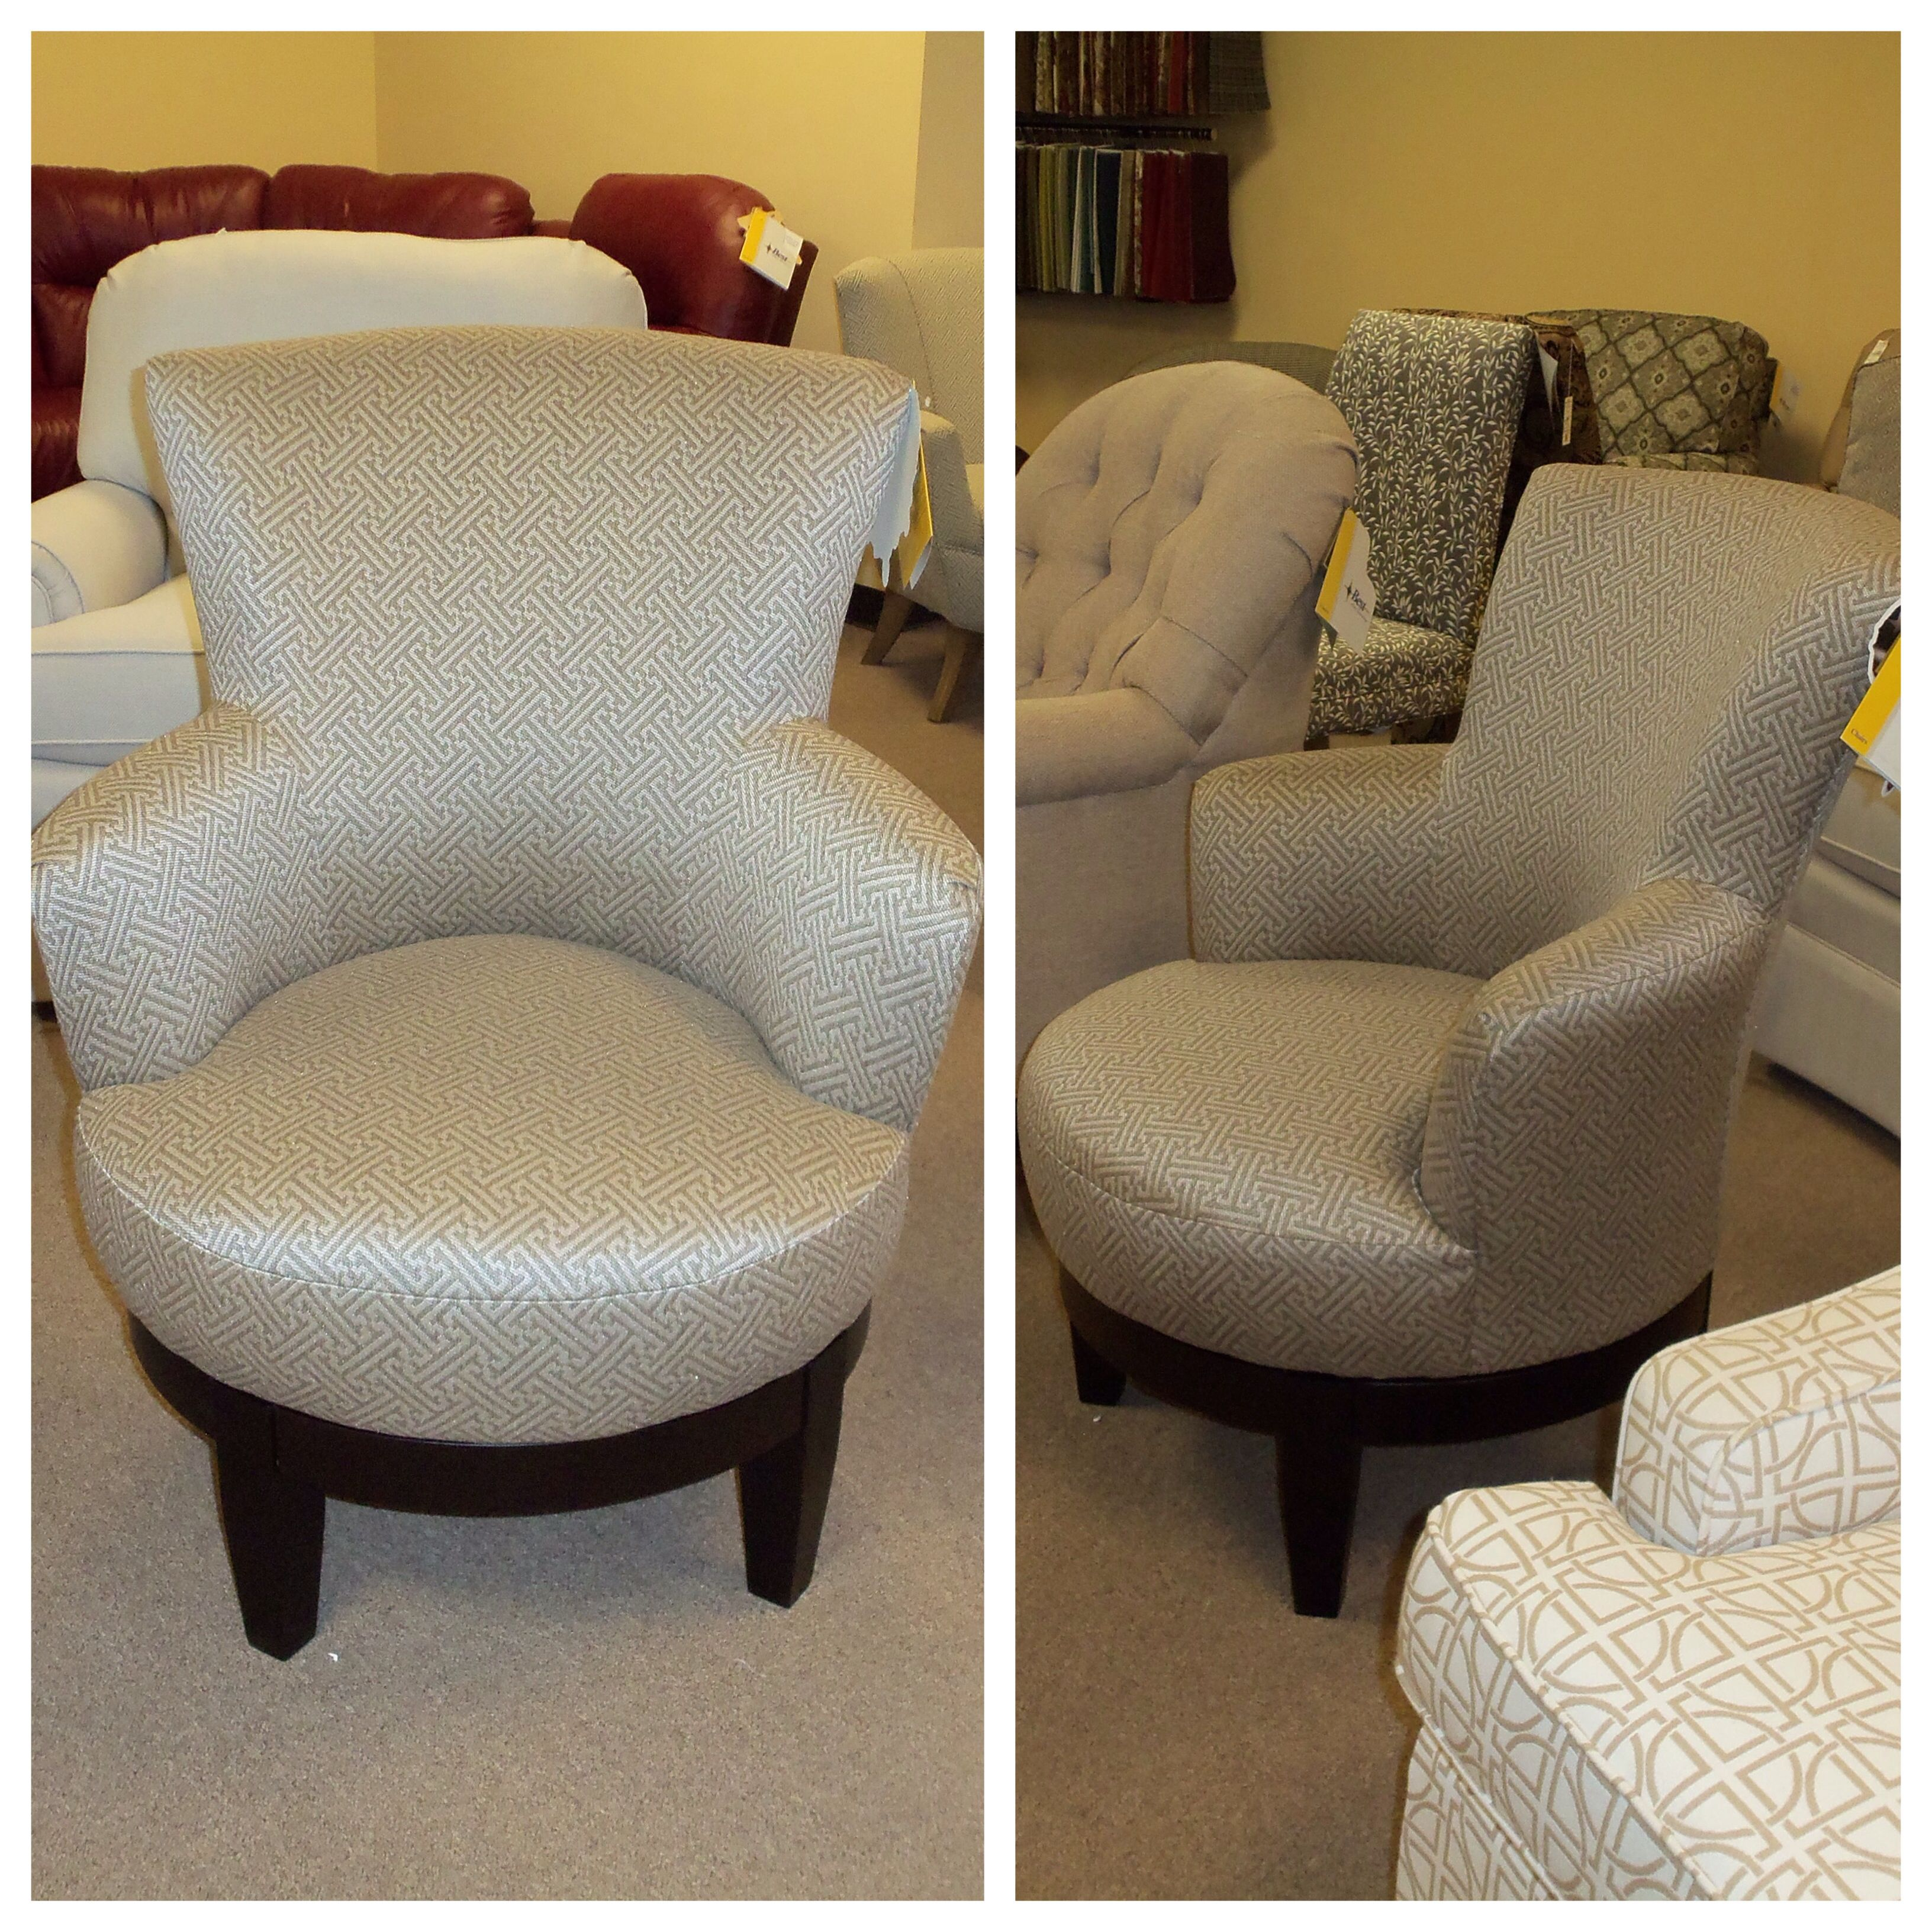 Cute Swivel Chair Cute Swivel Chair New On The Showroom Floor Best Home